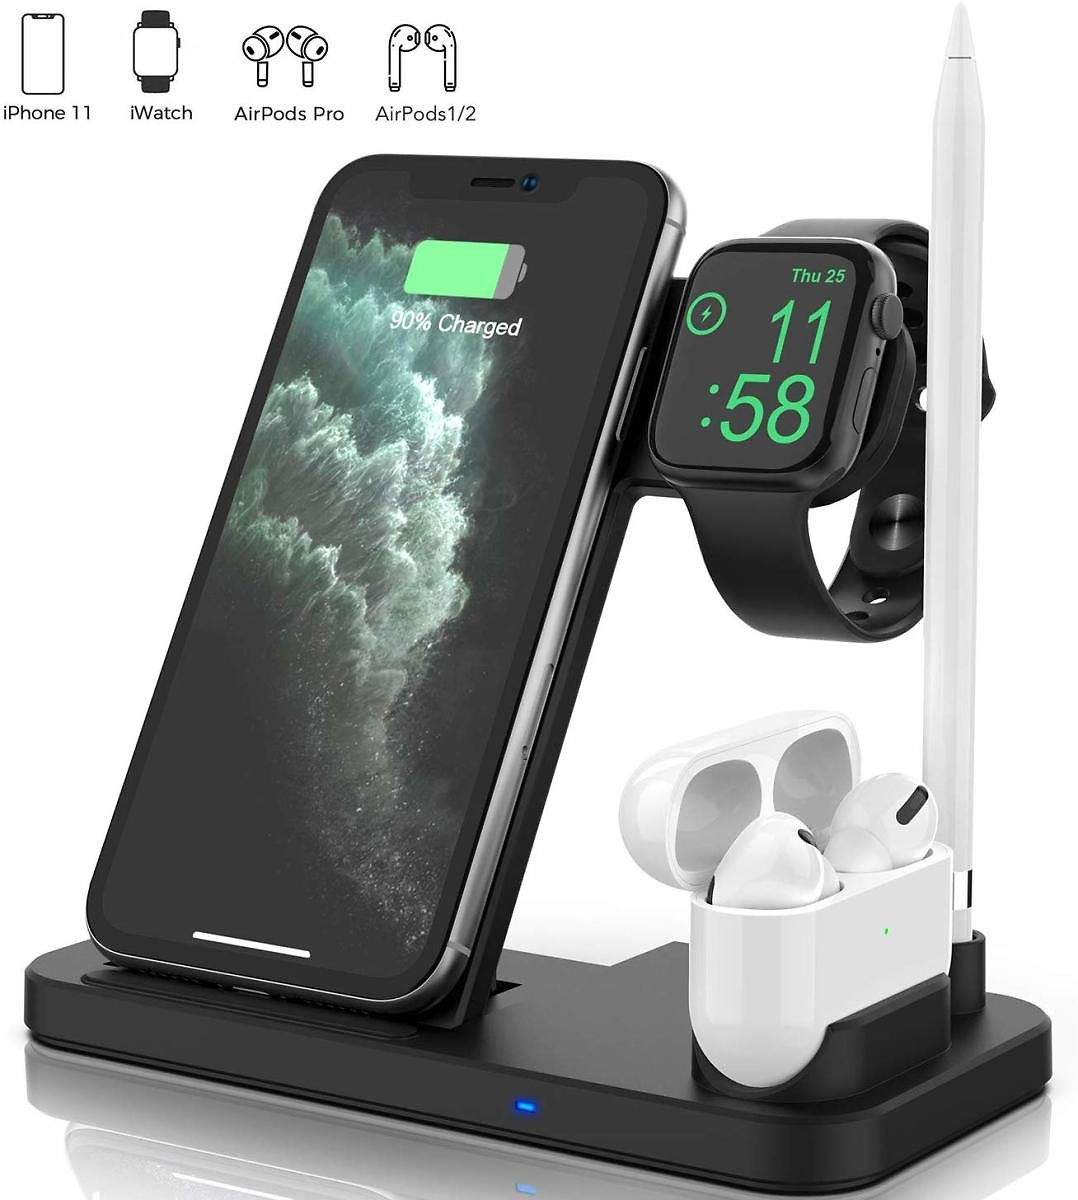 Updated Version 4 in 1 Wireless Charger, Fast Wireless Charging Dock Station for Apple iWatch Series 5/4/3/2/1, AirPods Pro/2